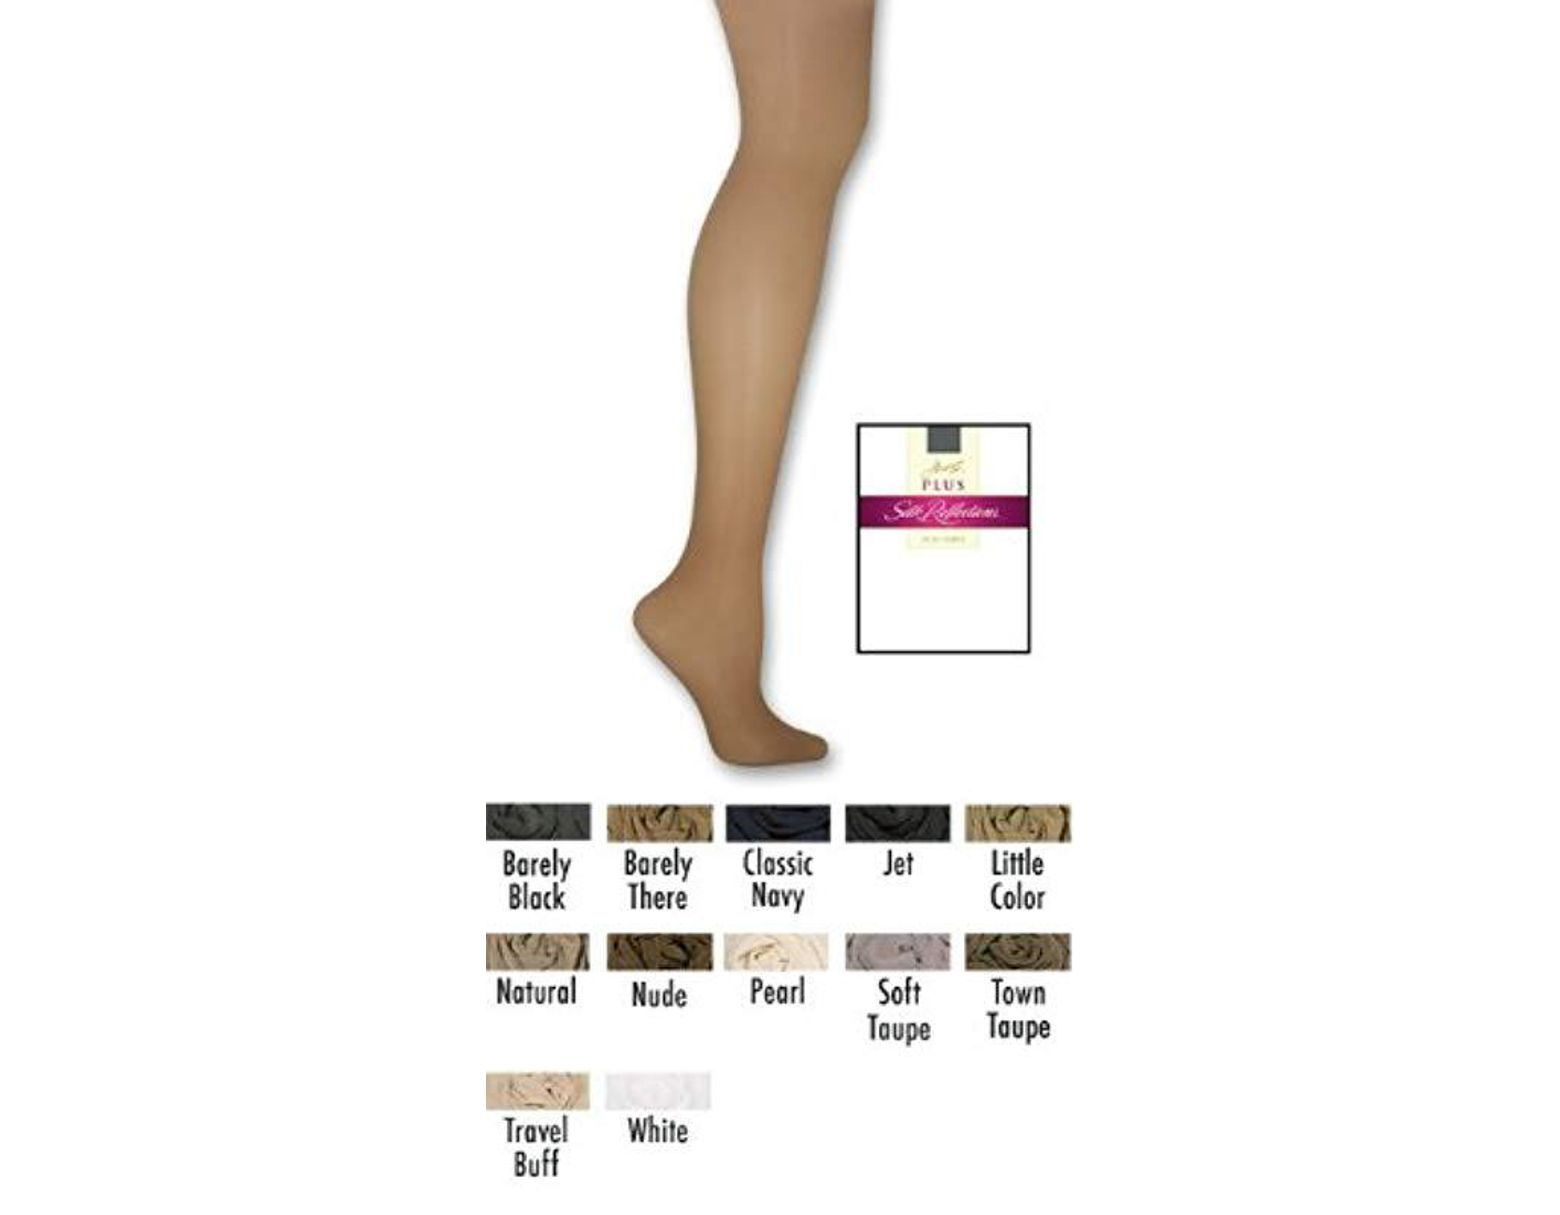 d4686f2e1e558 Hanes Silk Reflections Plus-size Control Top Enhanced Toe Pantyhose - Lyst